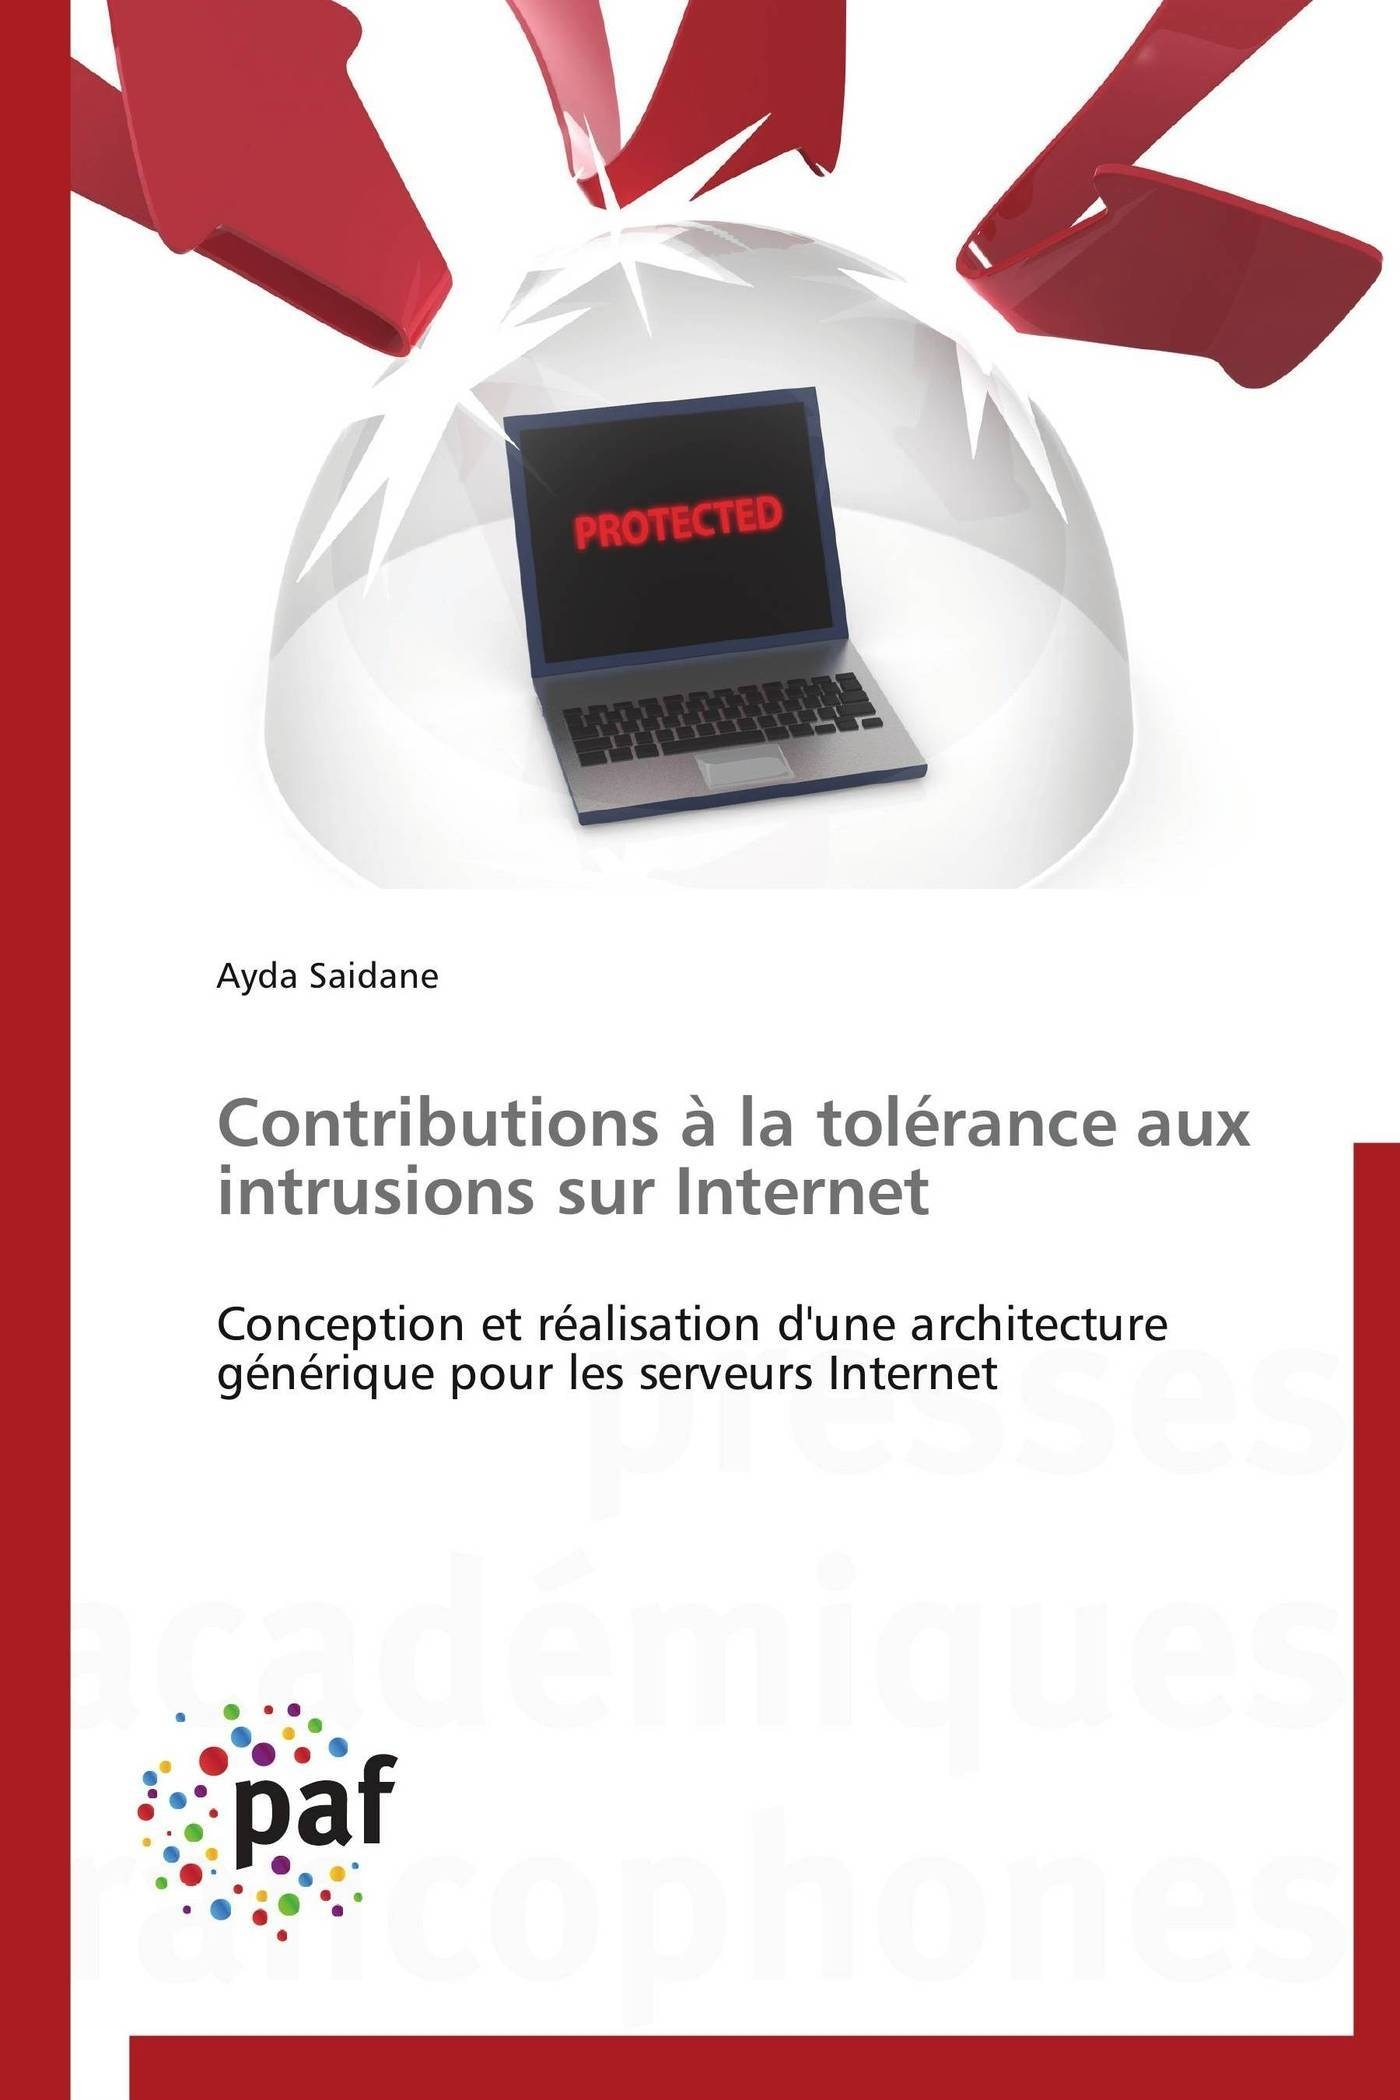 CONTRIBUTIONS A LA TOLERANCE AUX INTRUSIONS SUR INTERNET